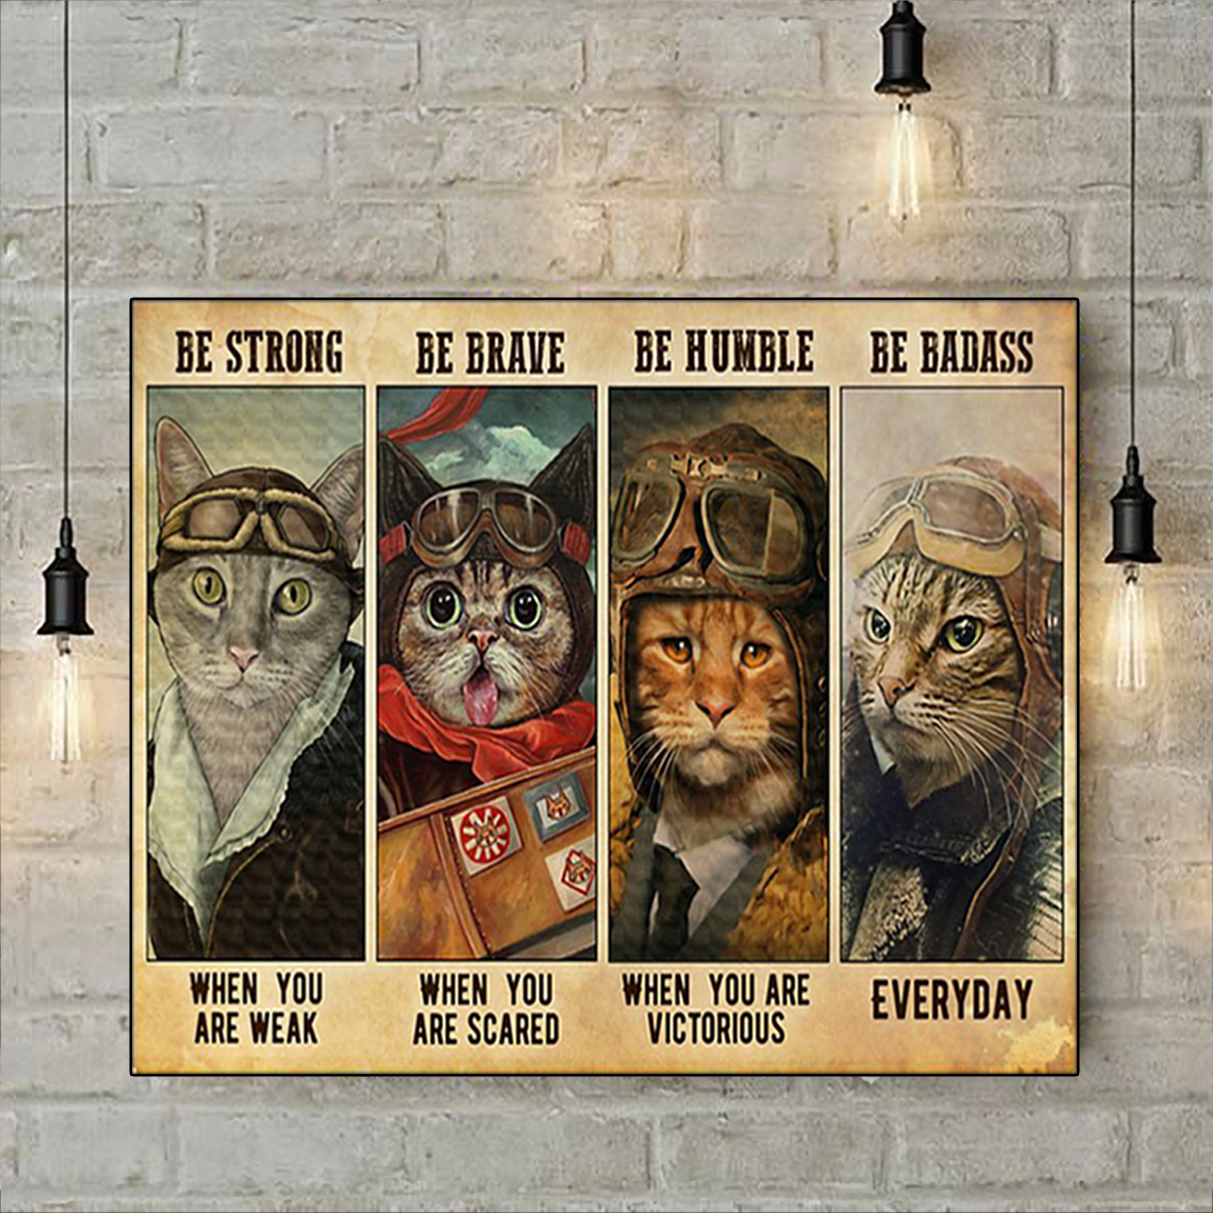 Cat pilot be strong be brave be humble be badass poster A3